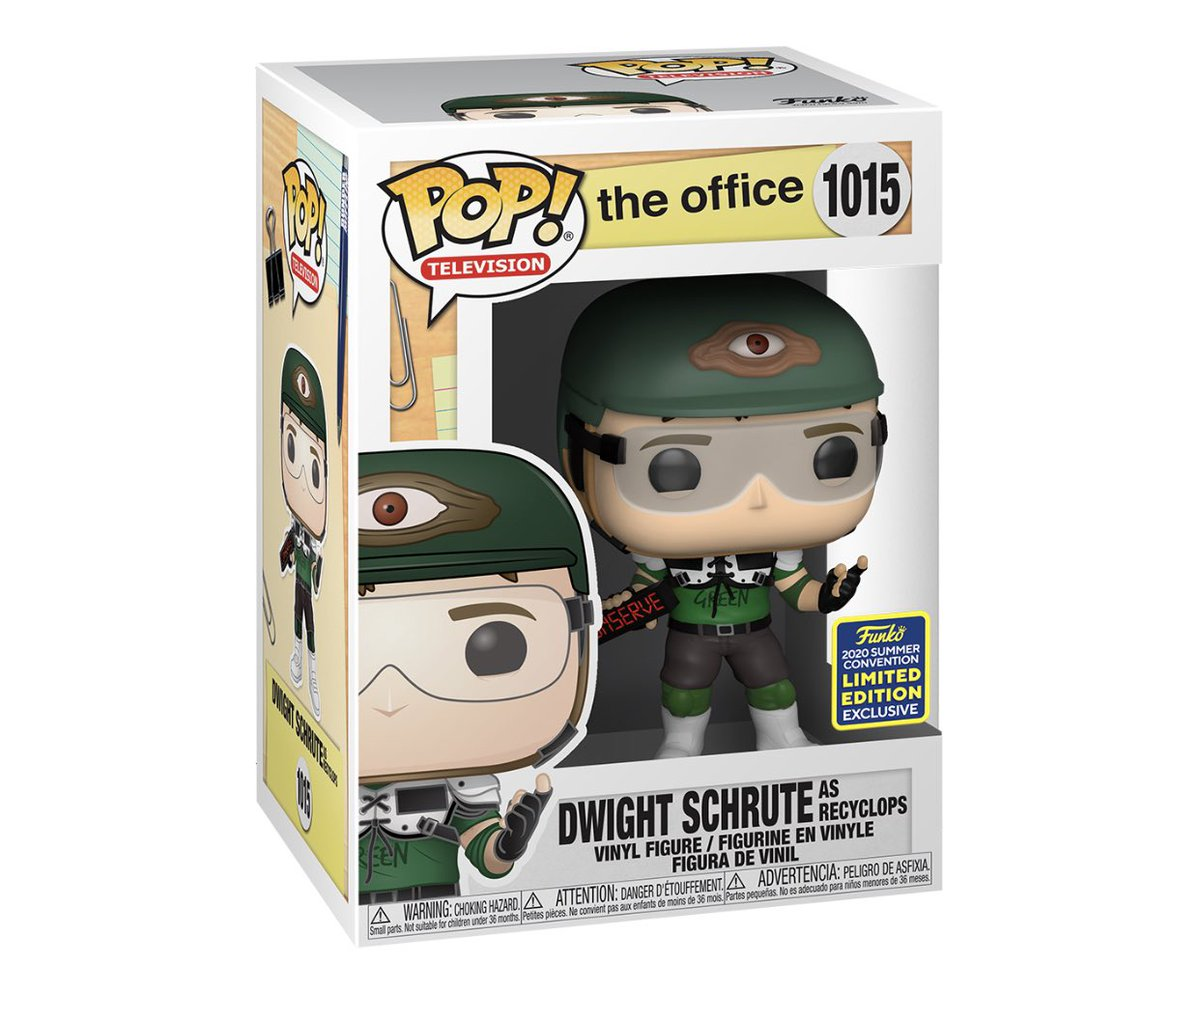 Restock: SDCC Shared exclusive Dwight as Recyclops! #SDCC #TheOffice #Funko #ad .